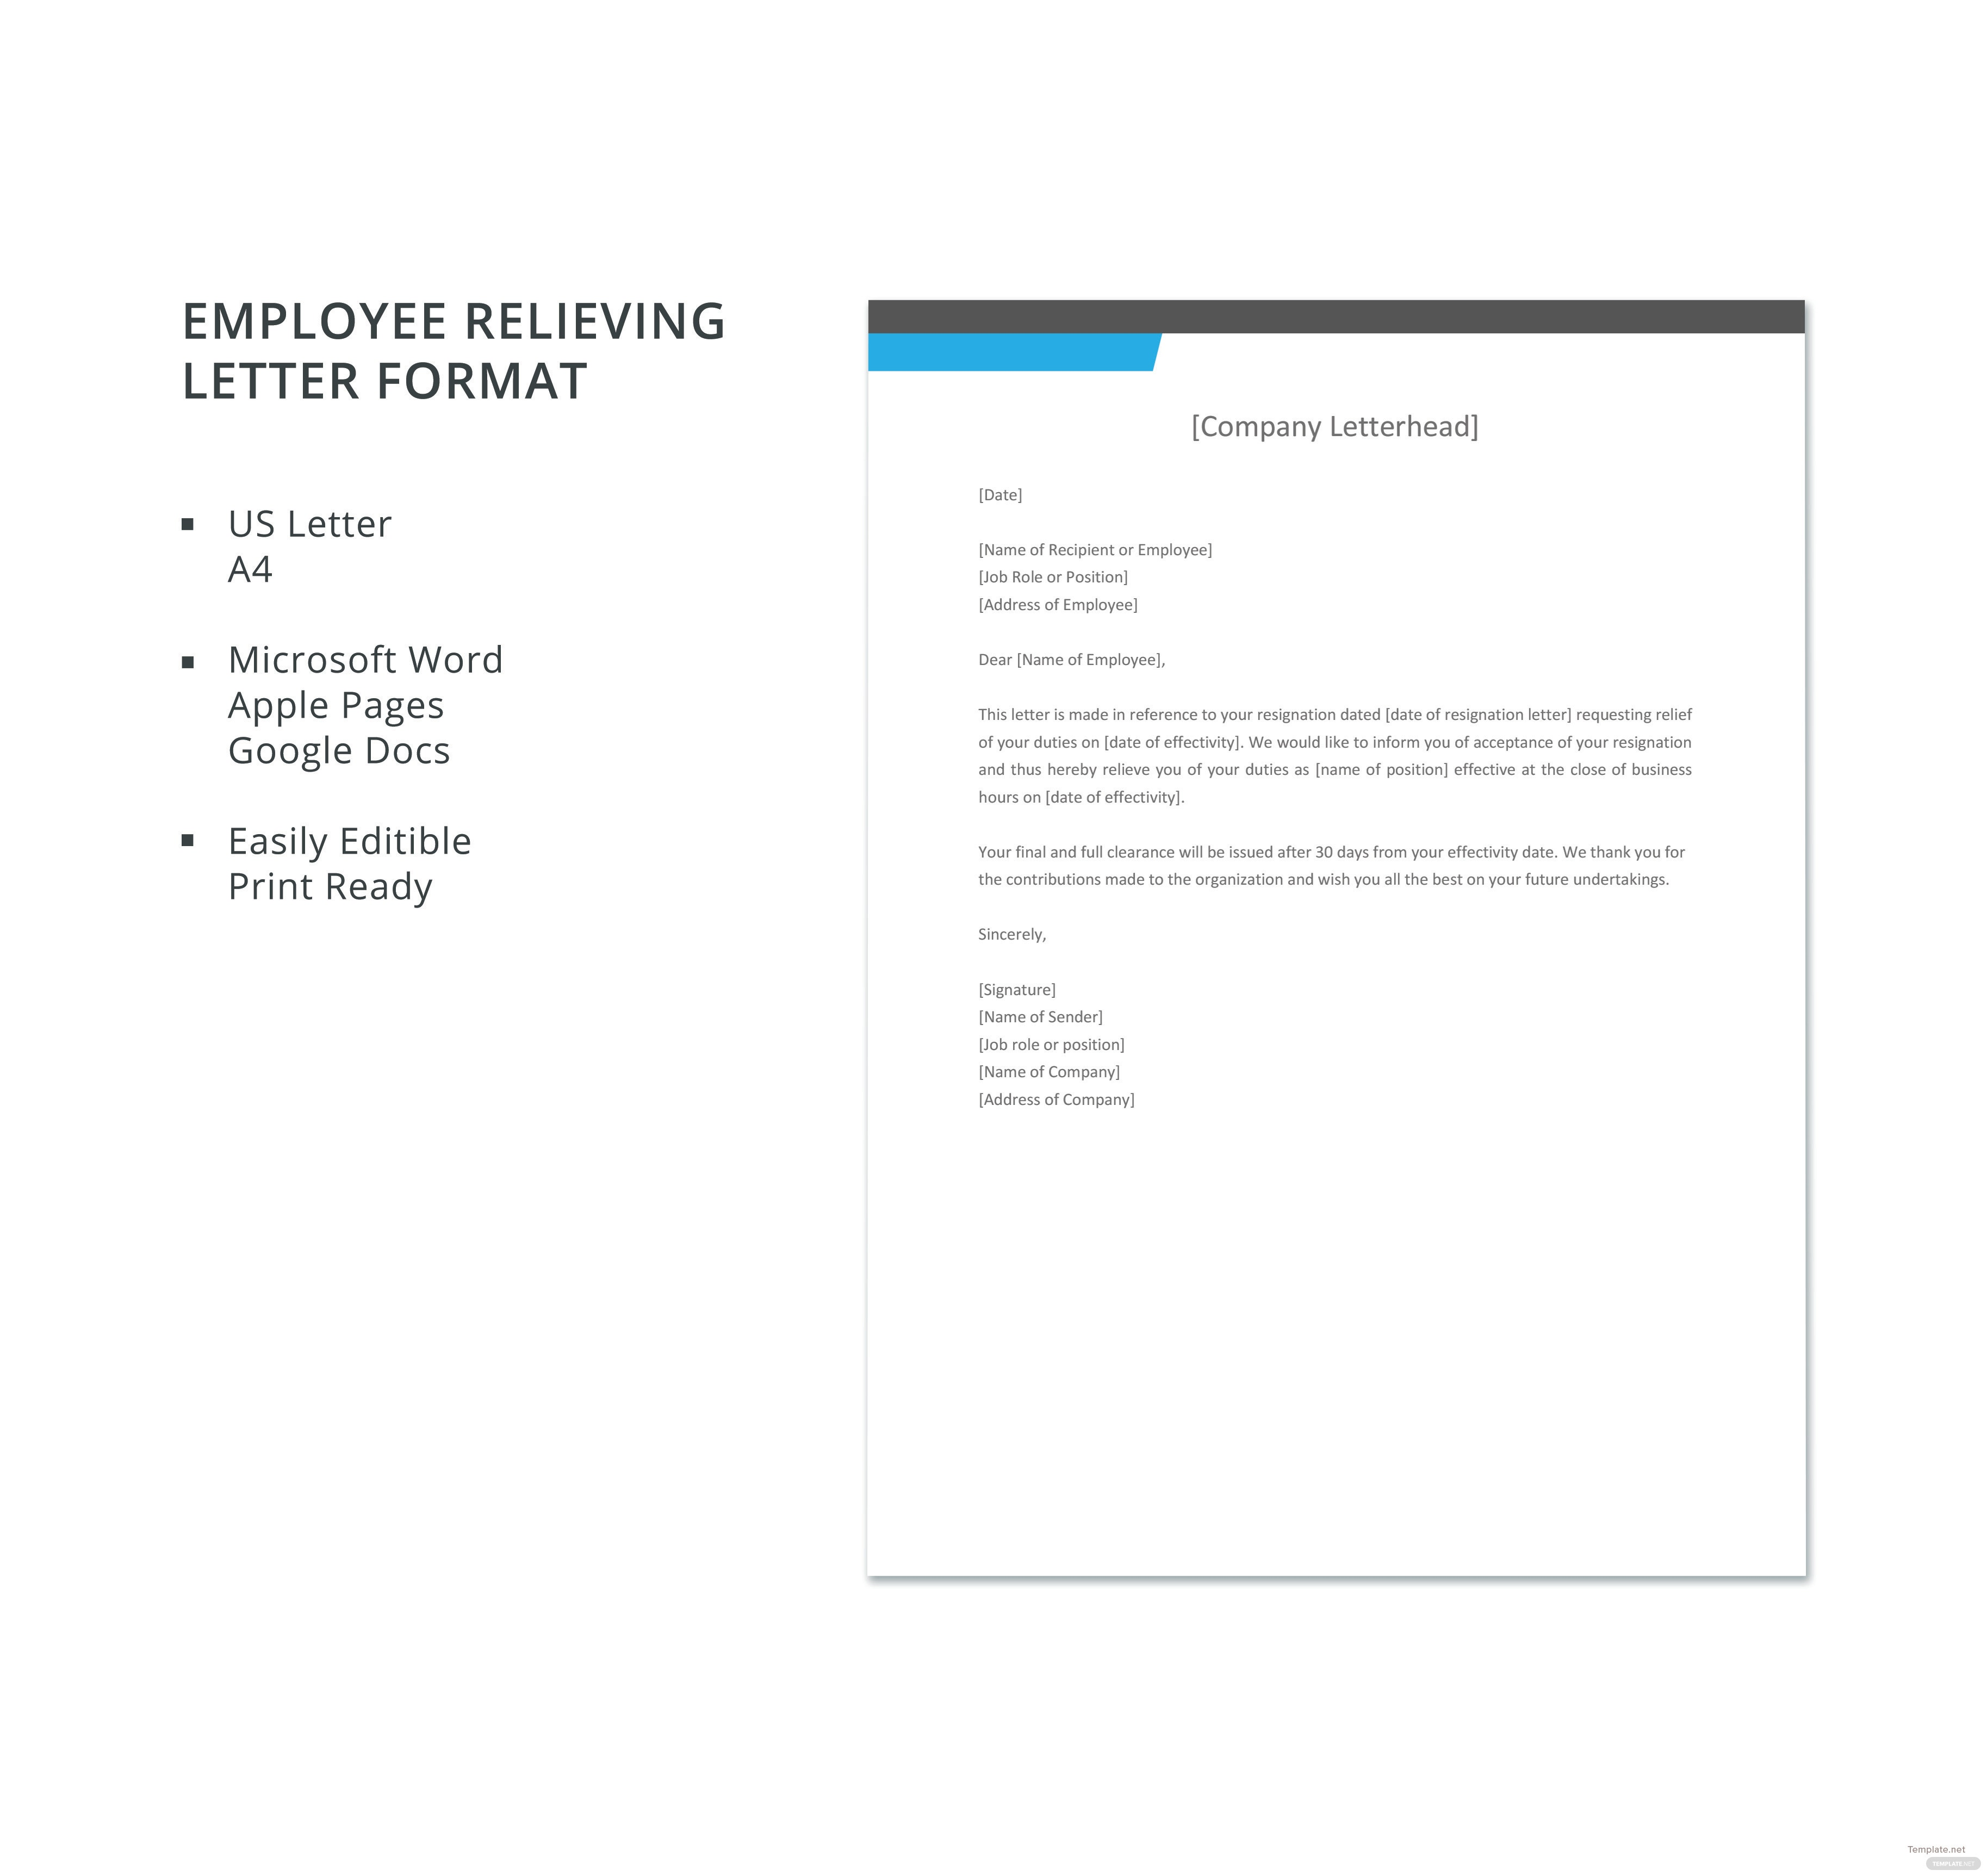 relieving letter format in word document